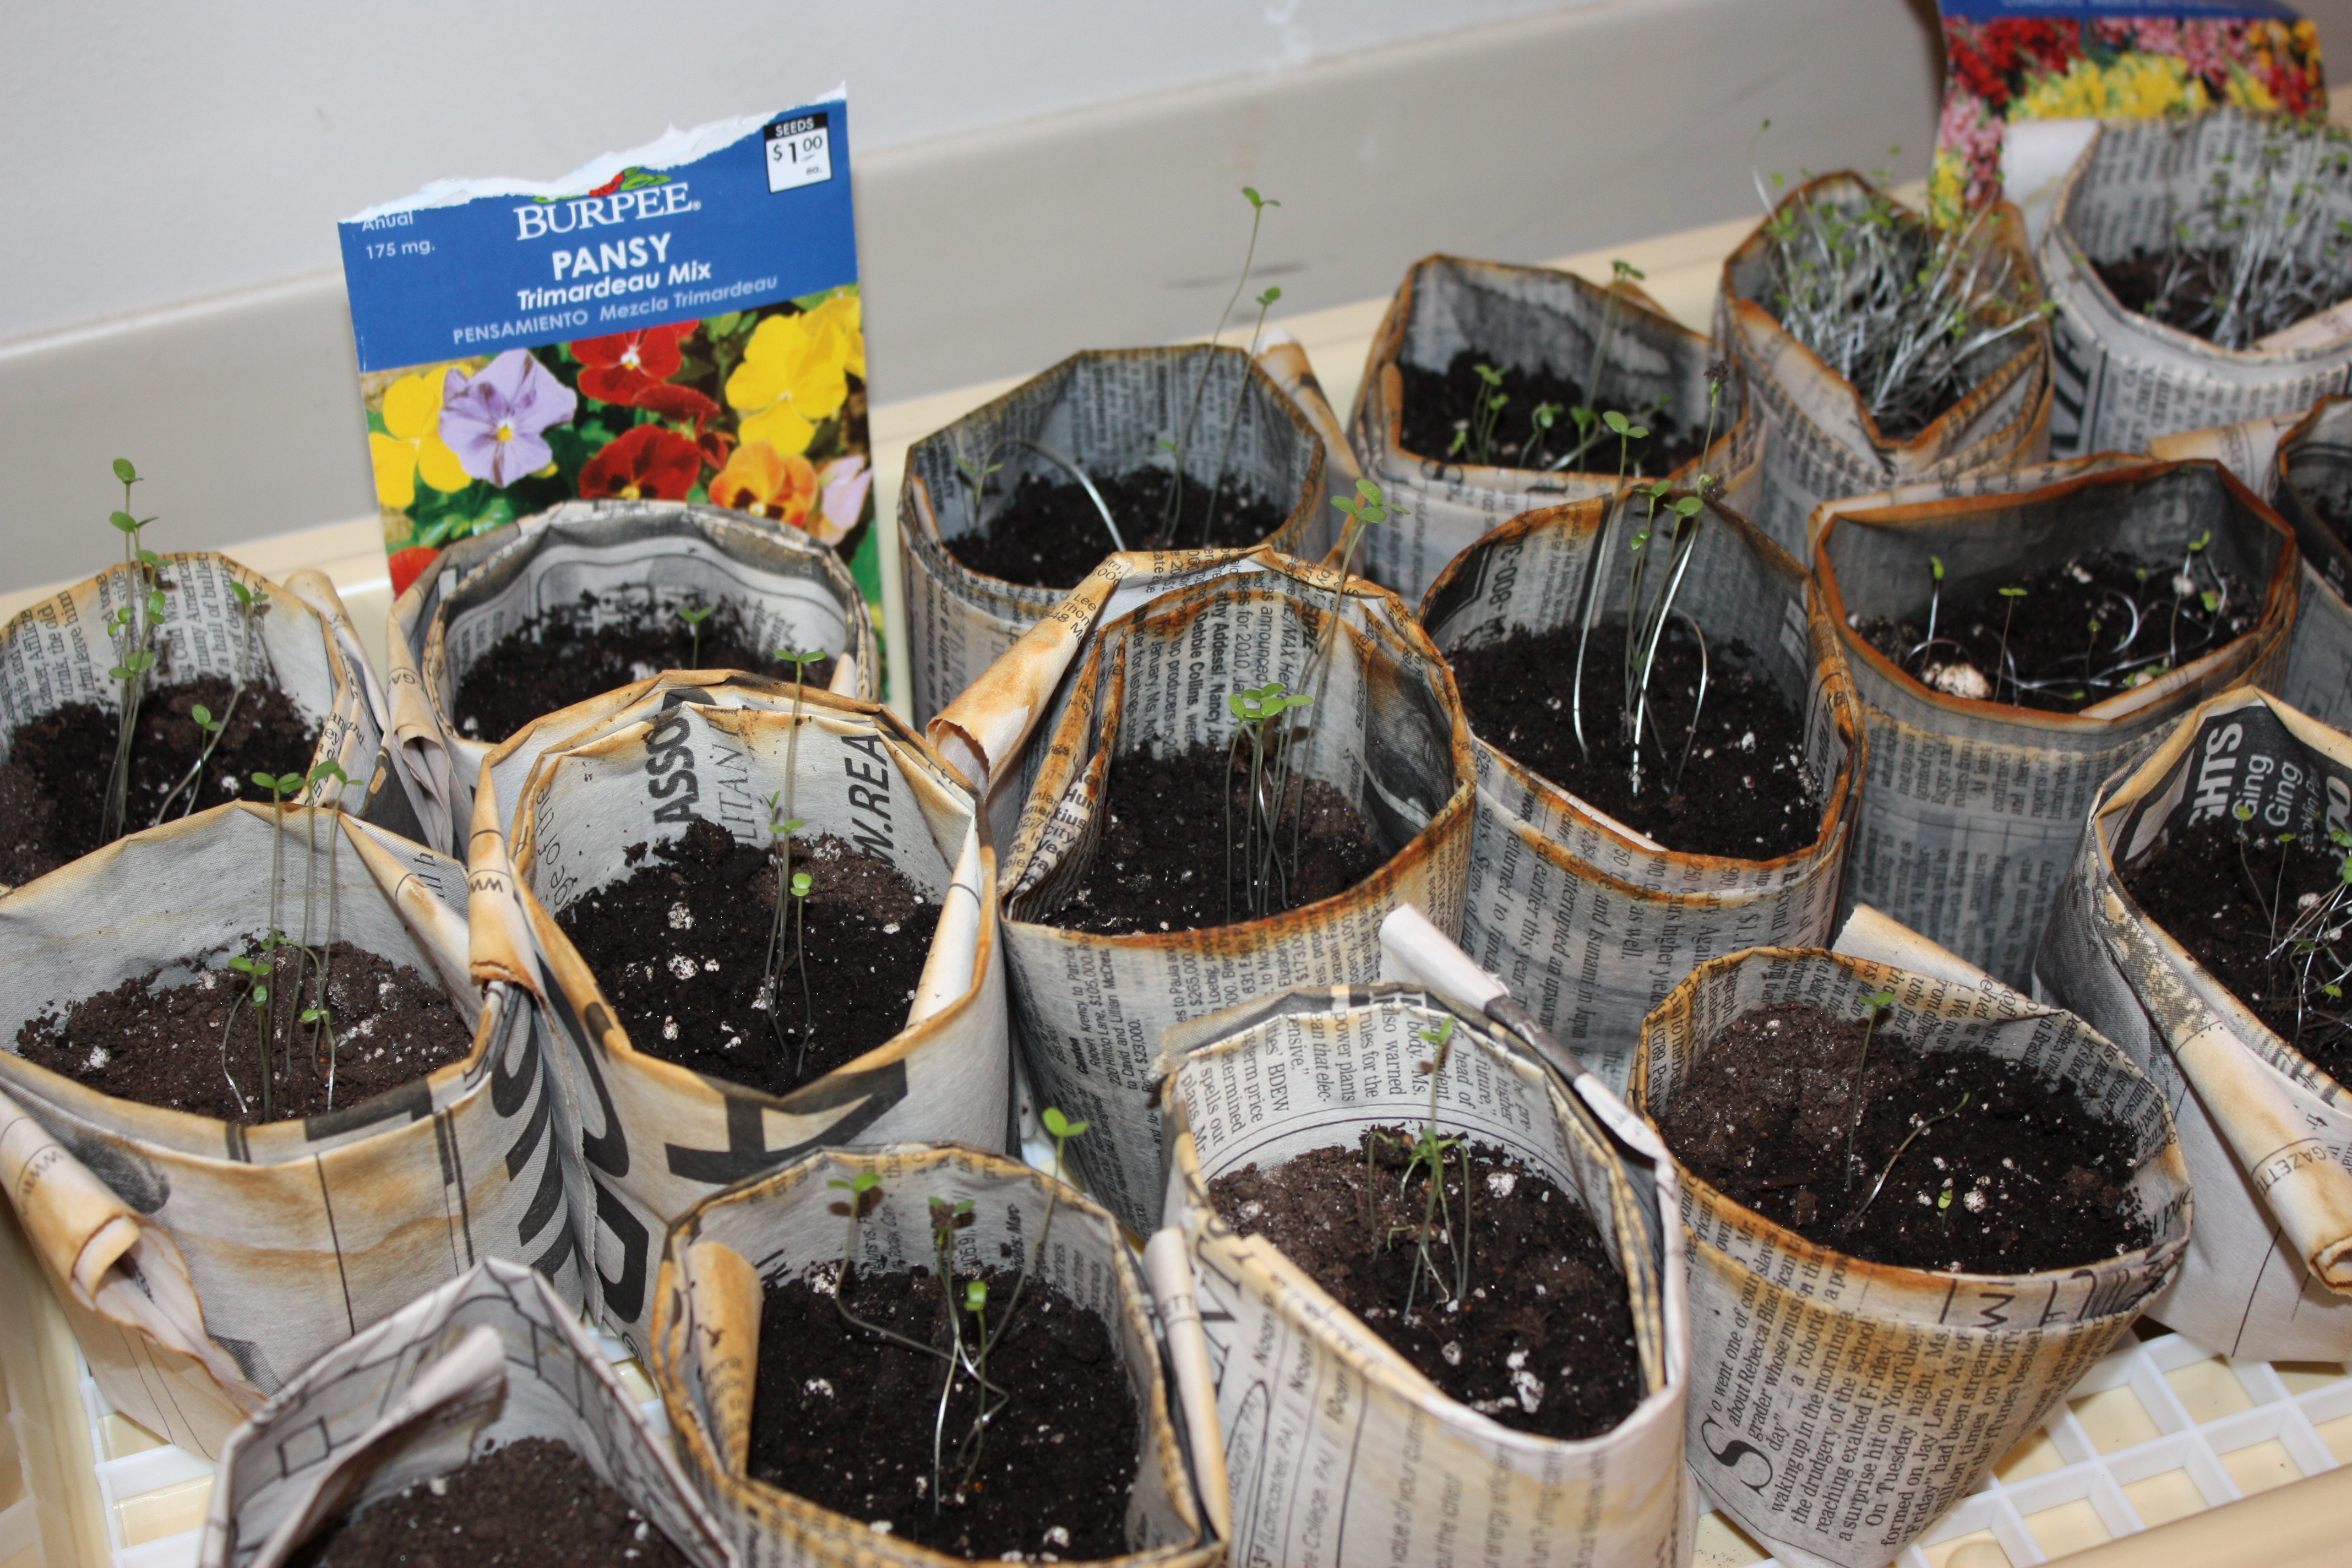 Celebrating earth day go green with recycled newspaper seedling pots csa and more the - Recycled containers for gardening ...